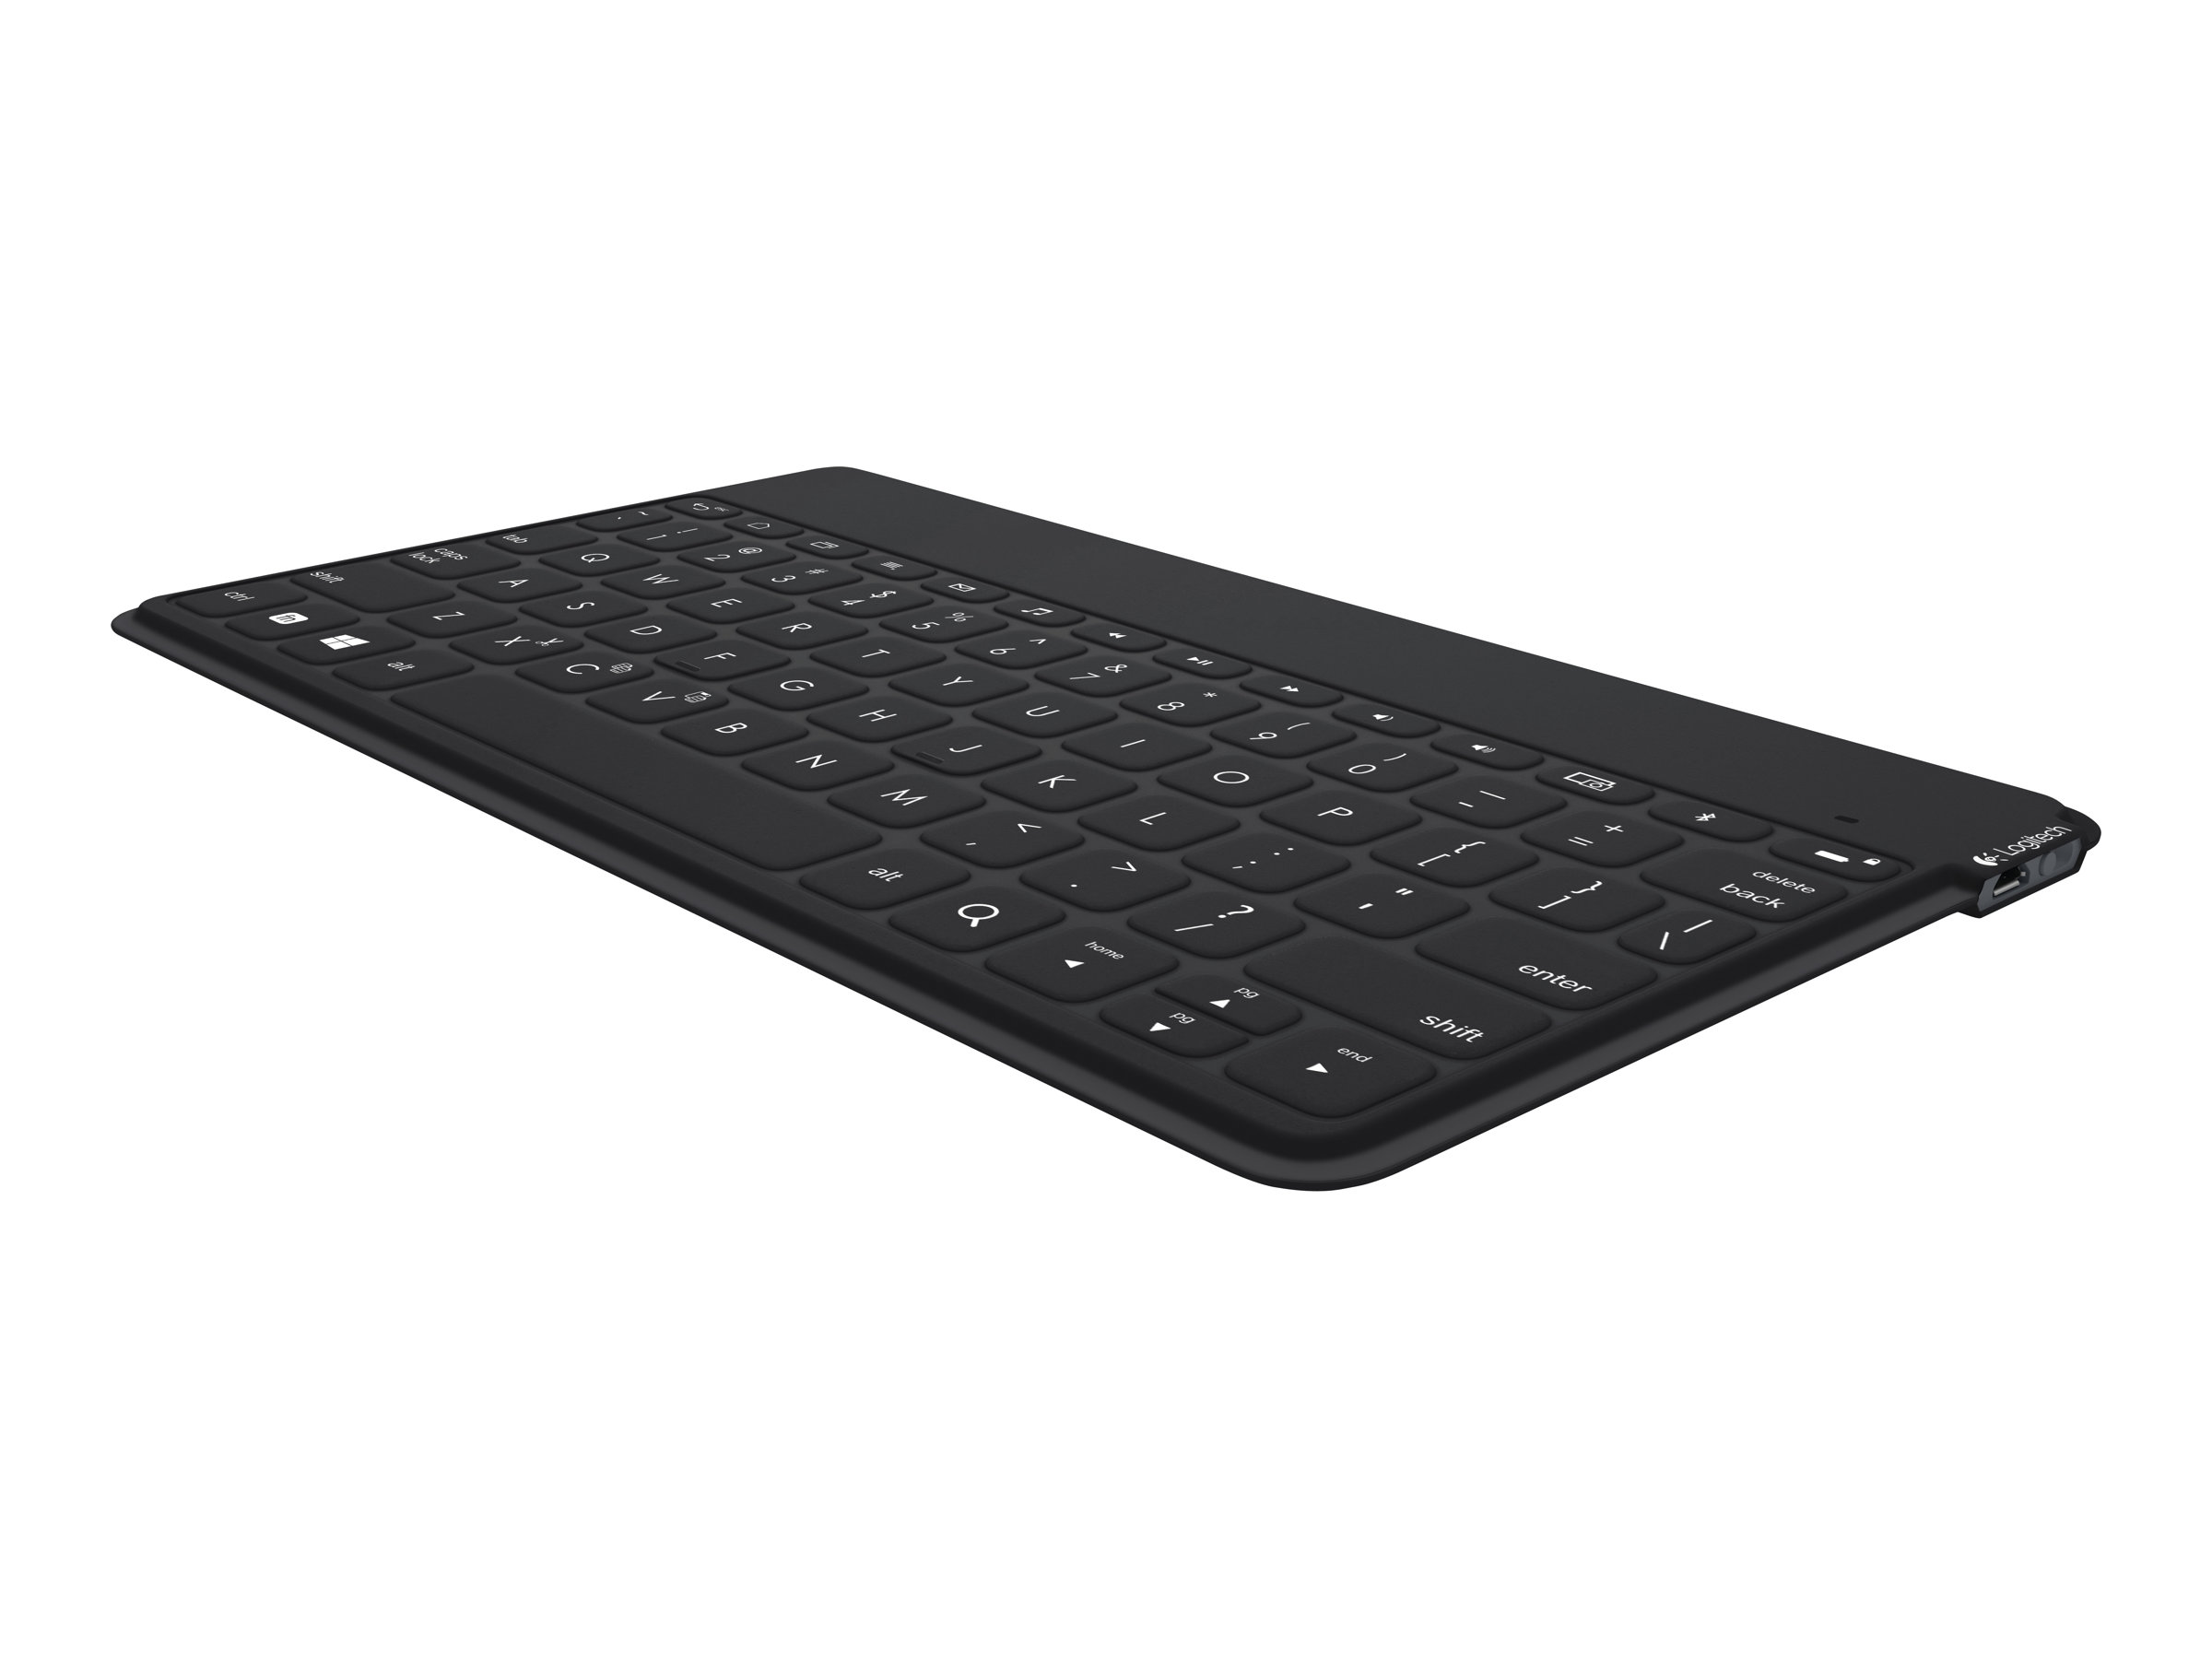 Logitech Keys-To-Go - Tastatur - Bluetooth - Deutsch - wasserdicht - Schwarz